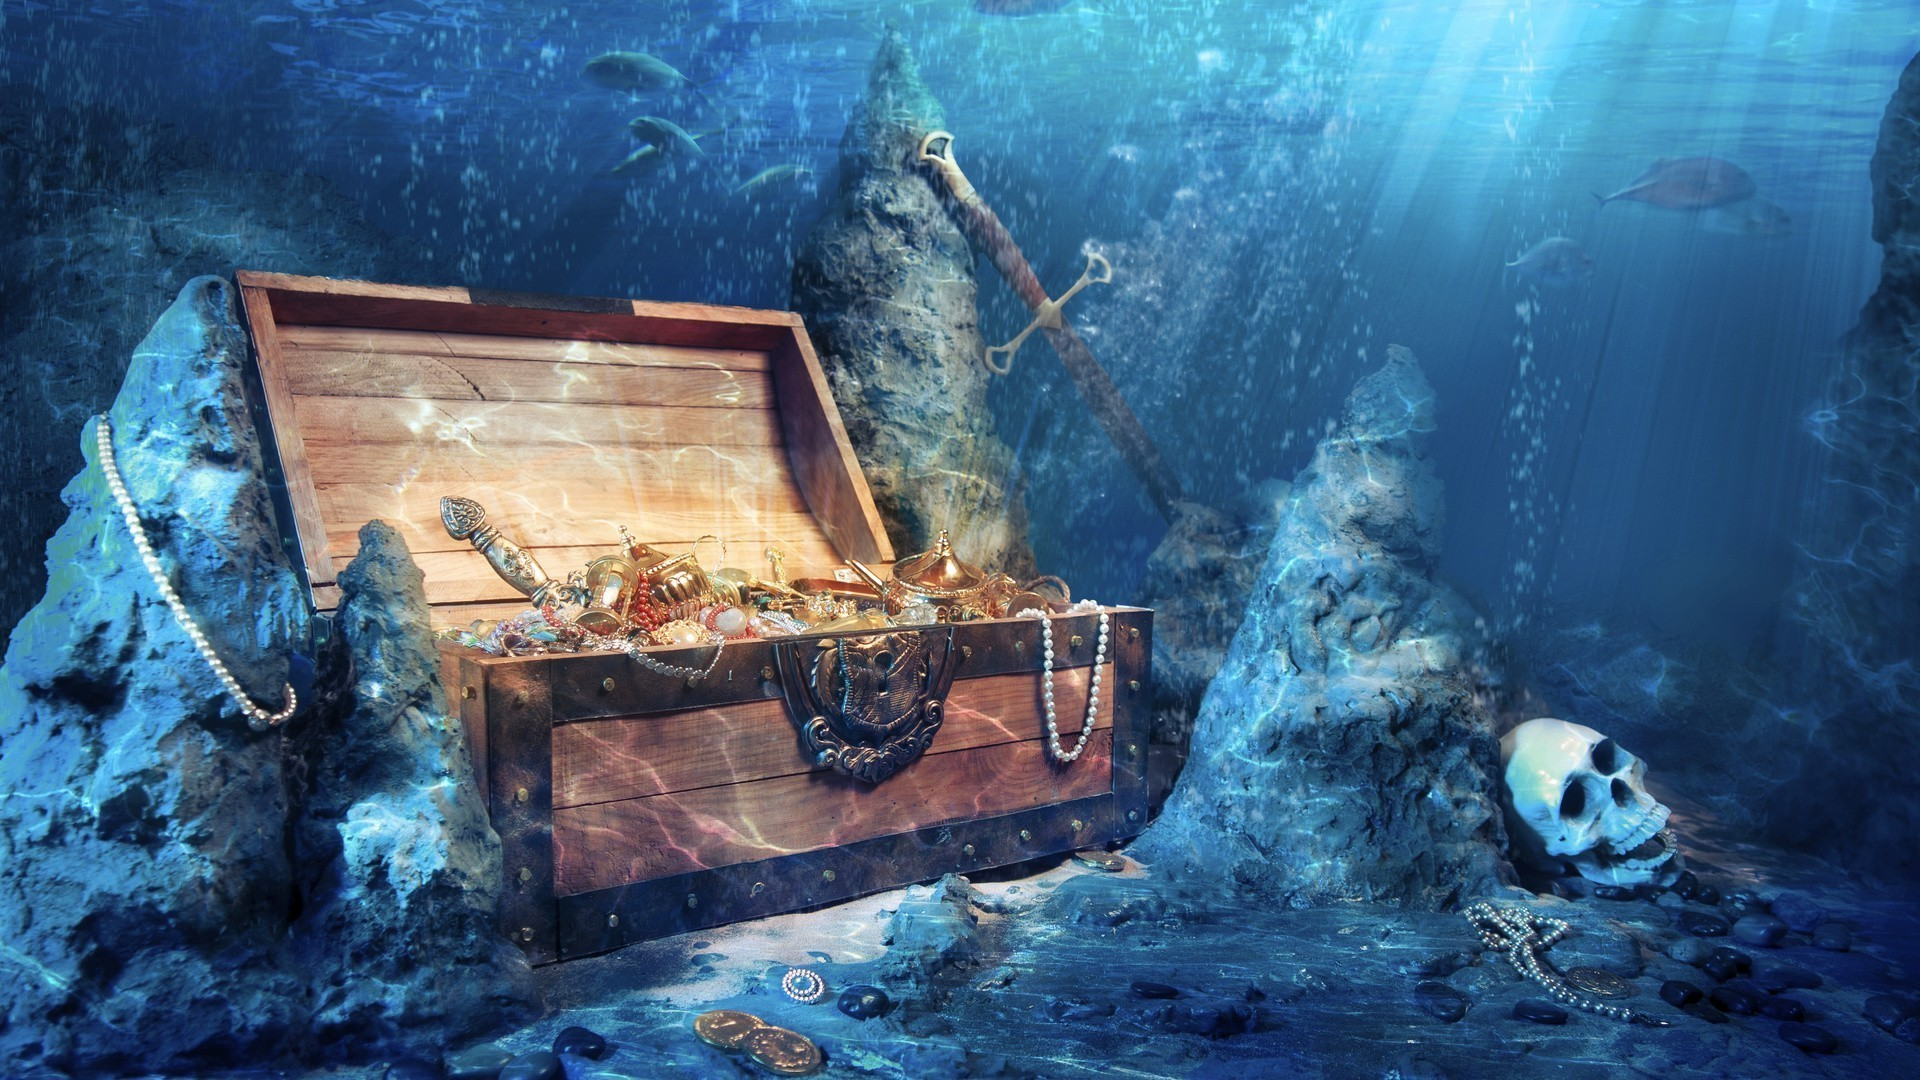 1920x1080 Marine life water underwater shipwreck fish one calamity recreation ocean  HD wallpaper. Android wallpapers for free.